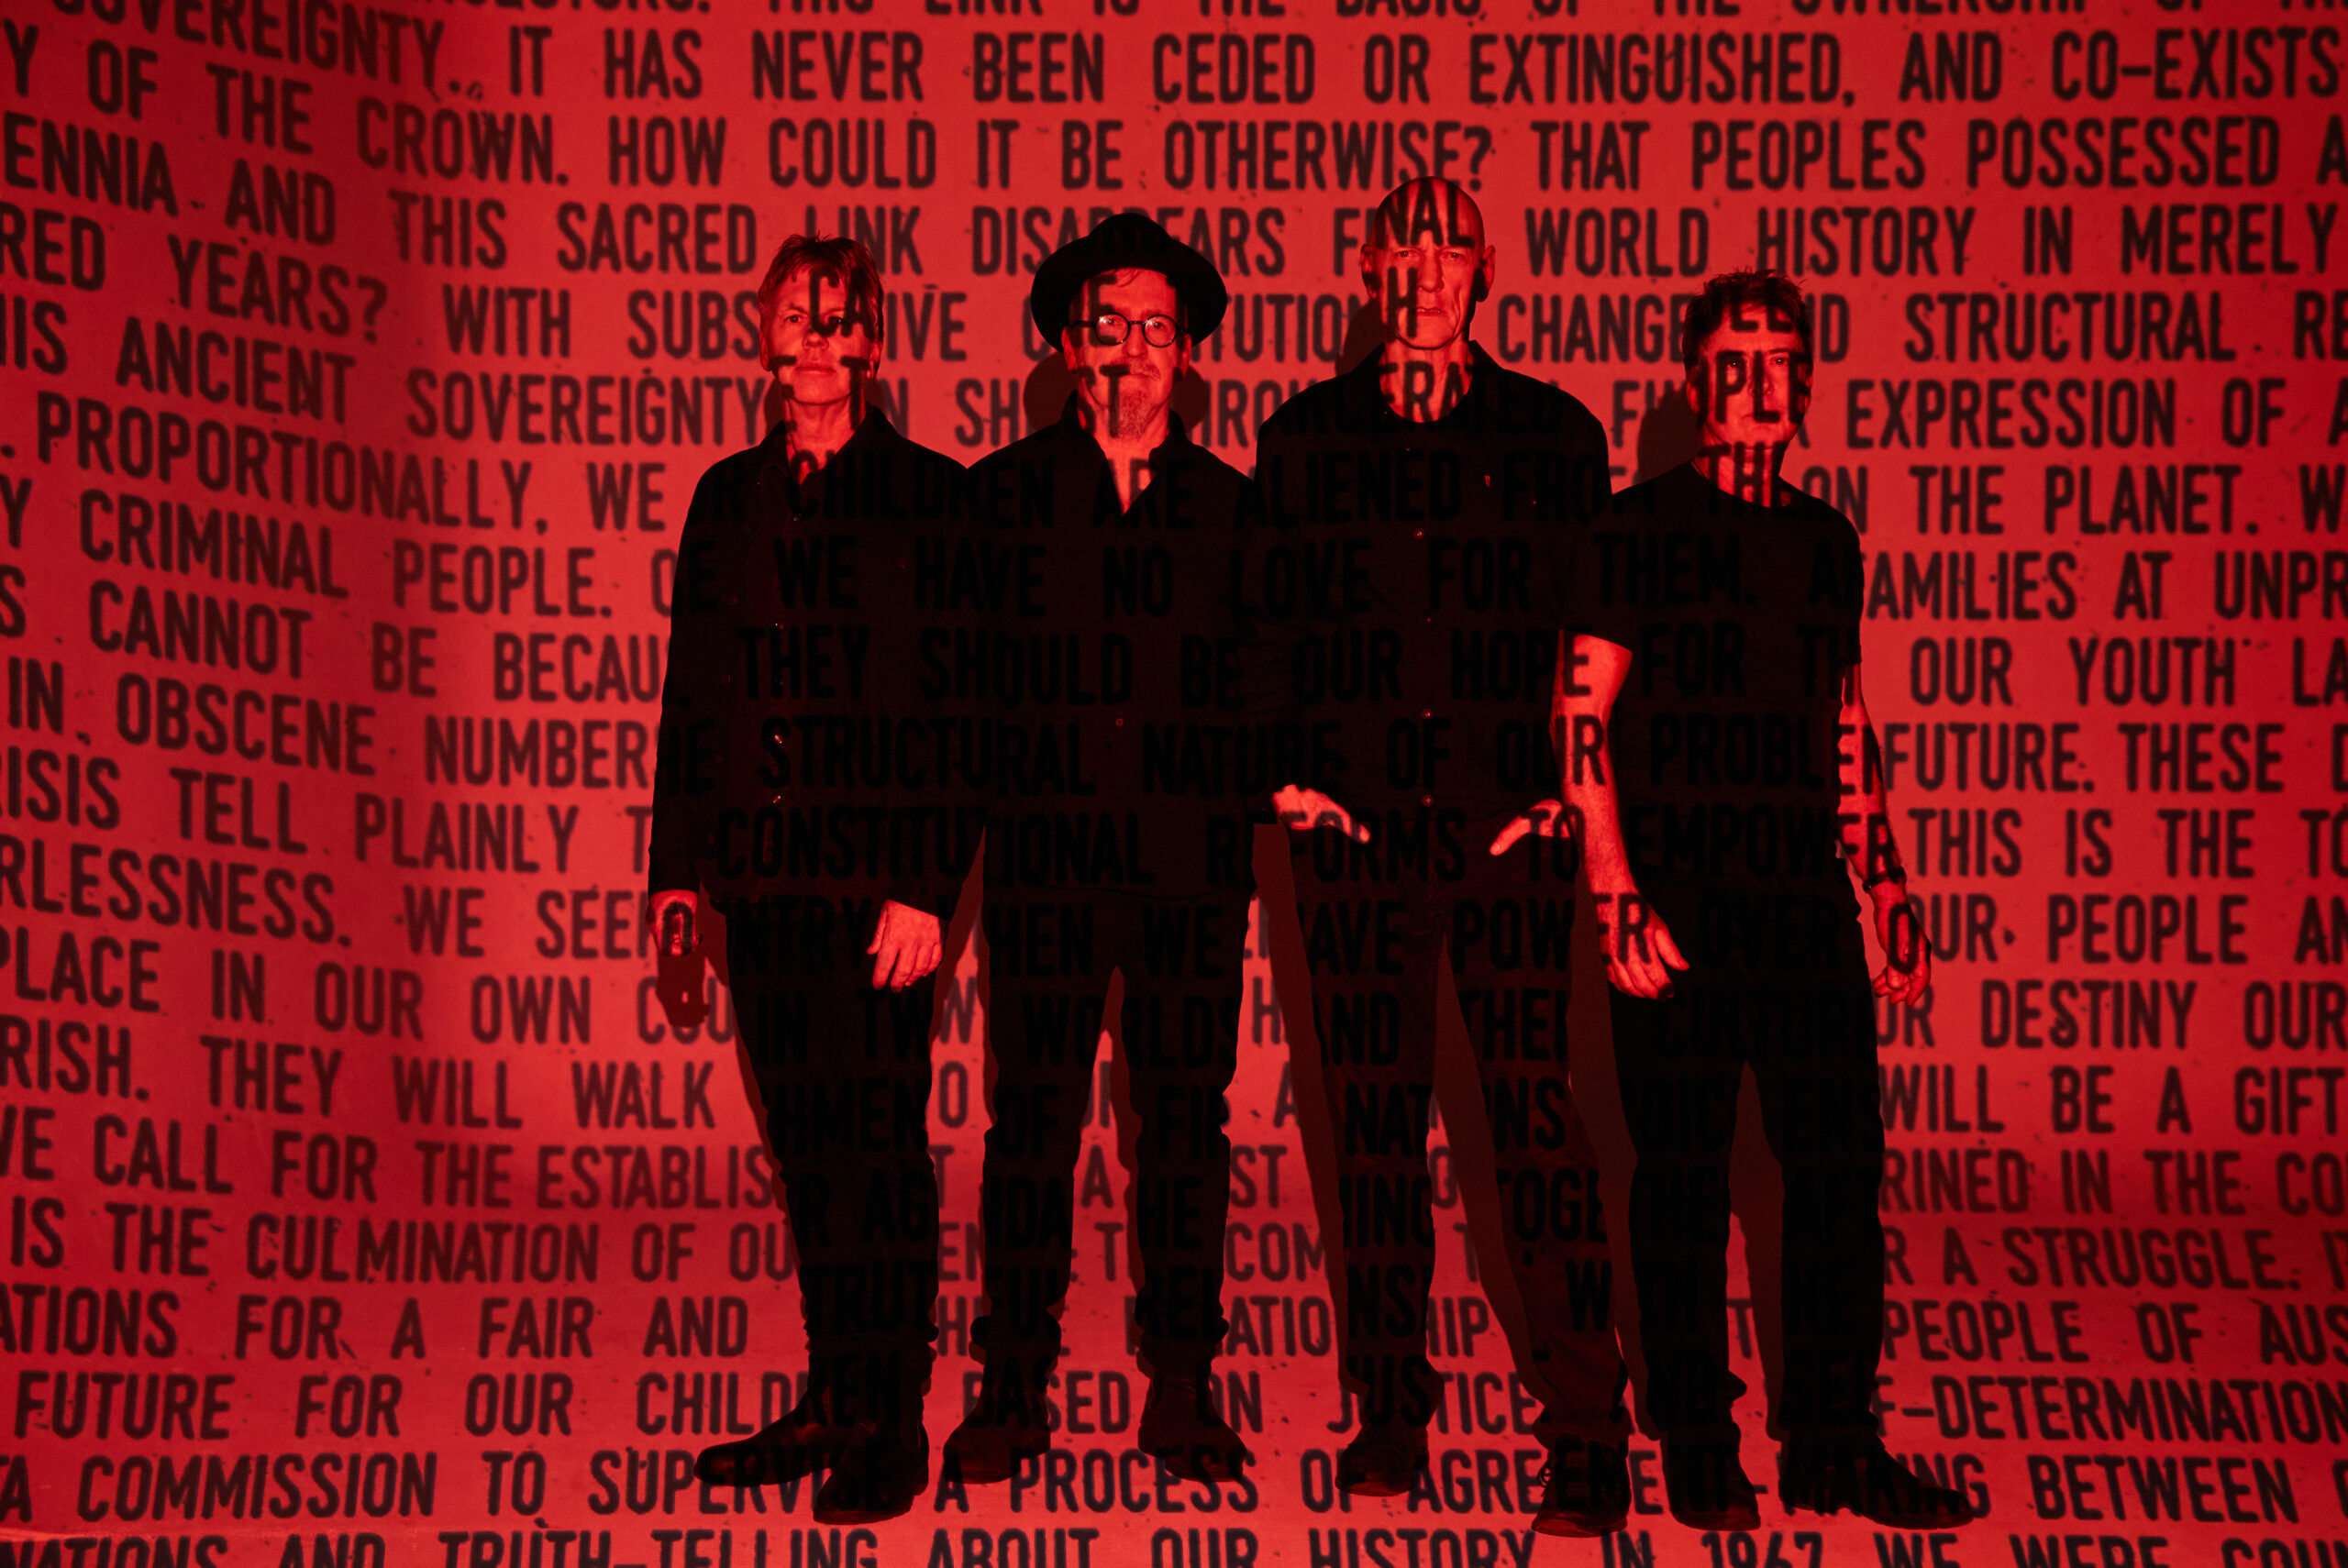 MIDNIGHT OIL announce brand new mini-album THE MAKARRATA PROJECT - out October 30th